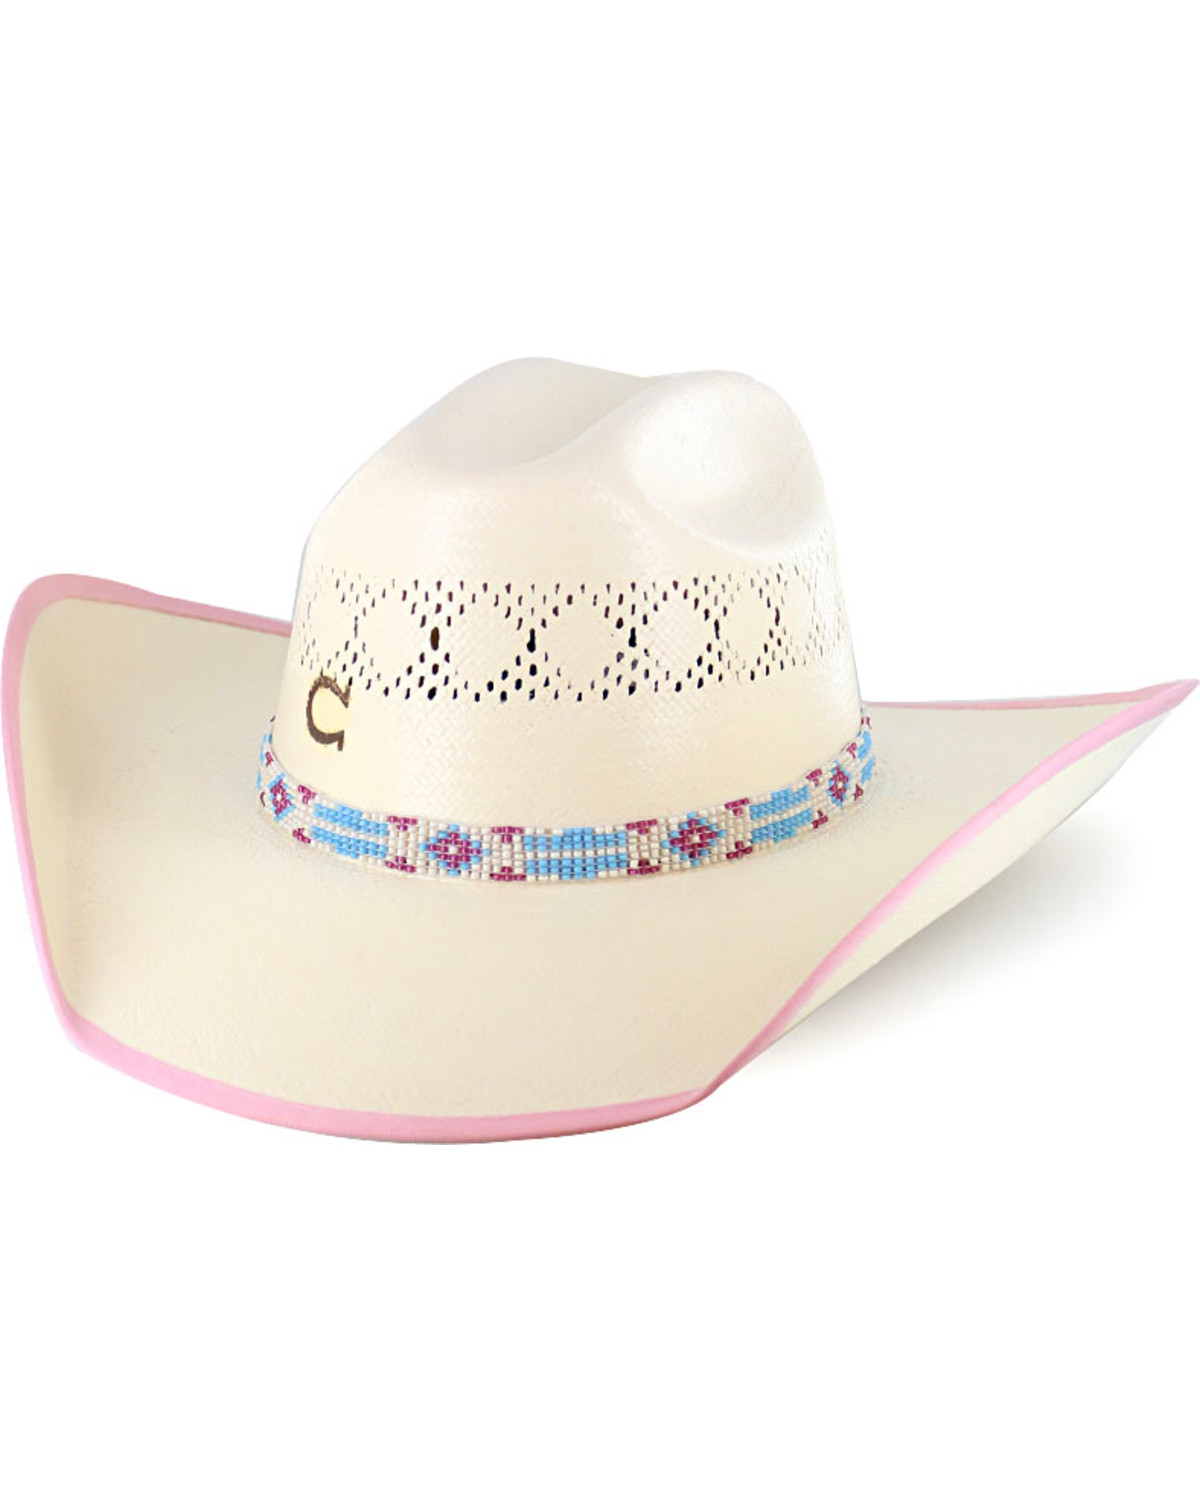 65f45bd76121b4 Zoomed Image Charlie 1 Horse Girls' Gracie Straw Hat, Natural, ...